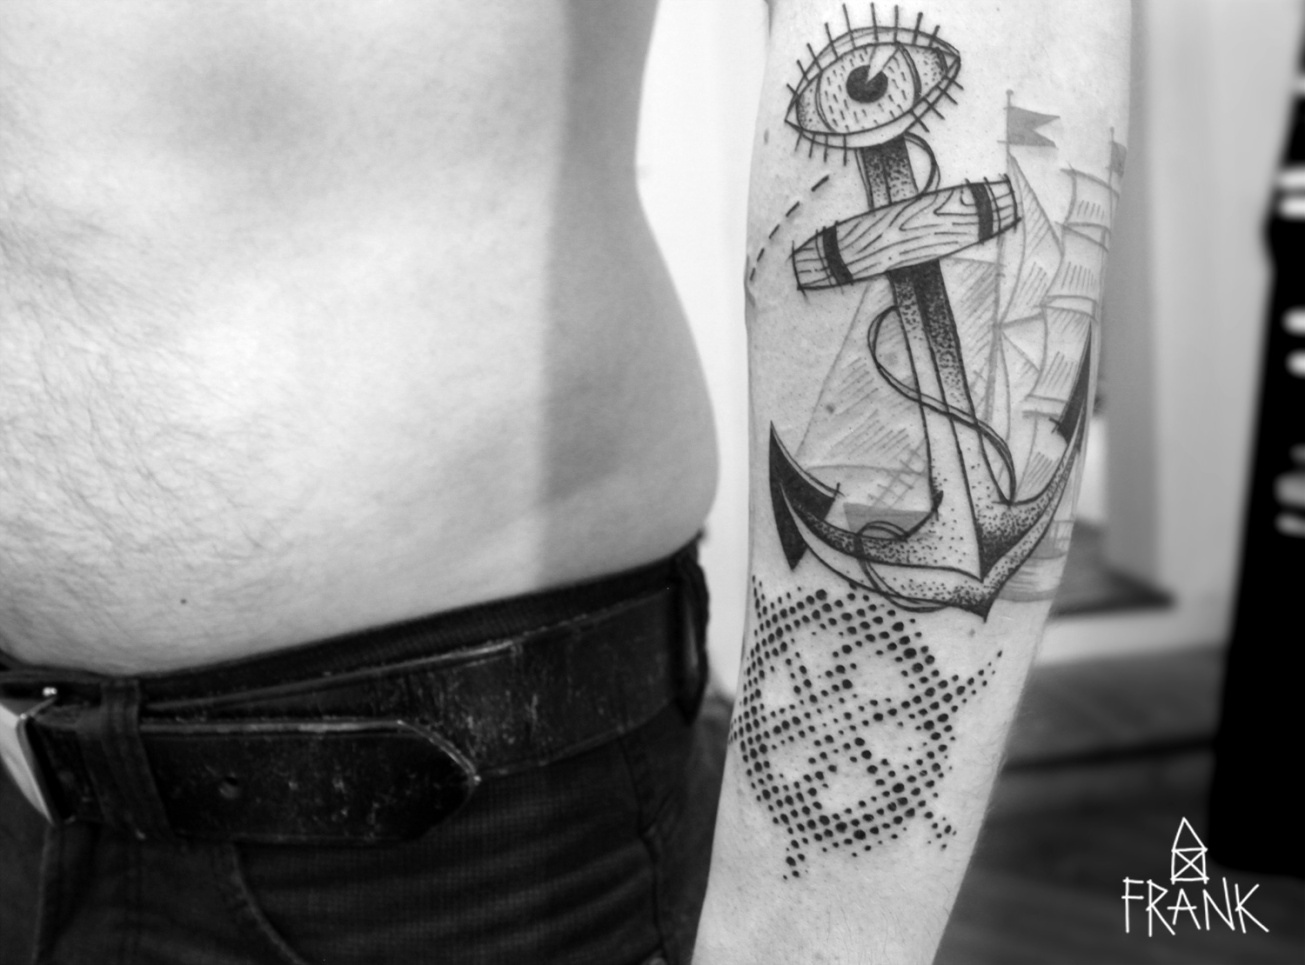 Miriam_Frank_tattoo_anker_anchor